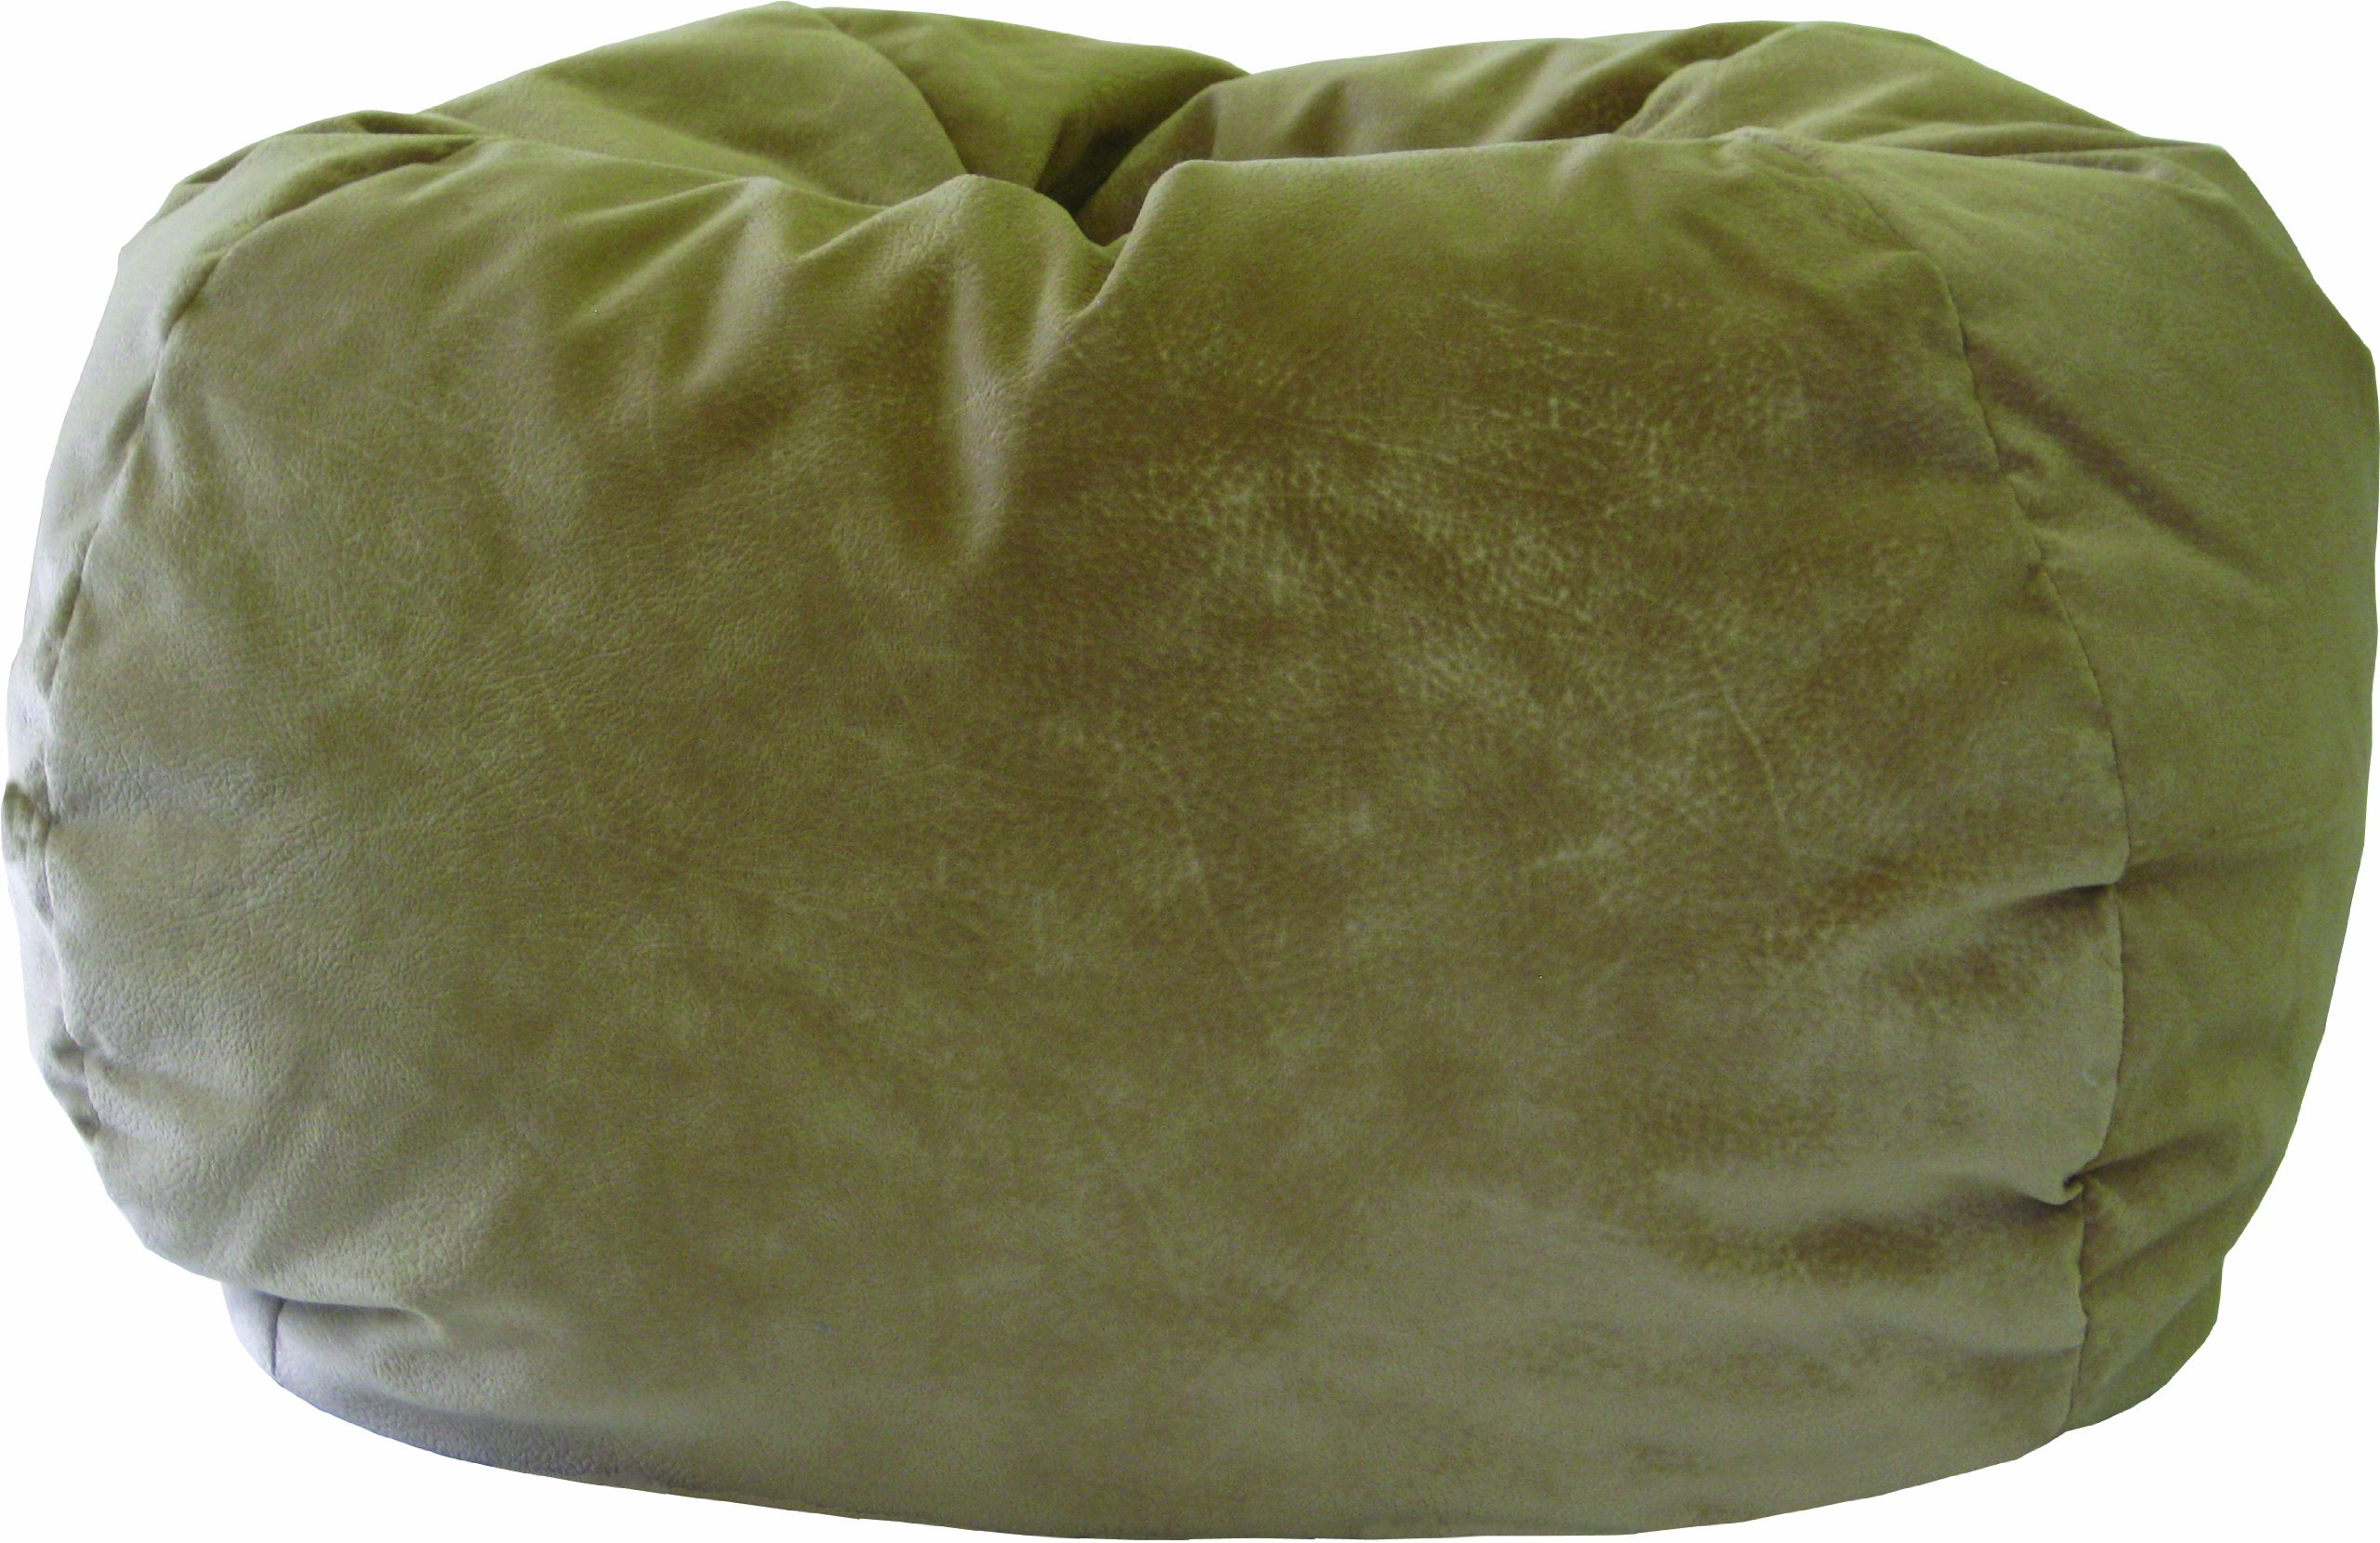 Gold Medal 30008458909 Small Fairview Suede Bean Bag for Children, Buff by Hudson Beanbags